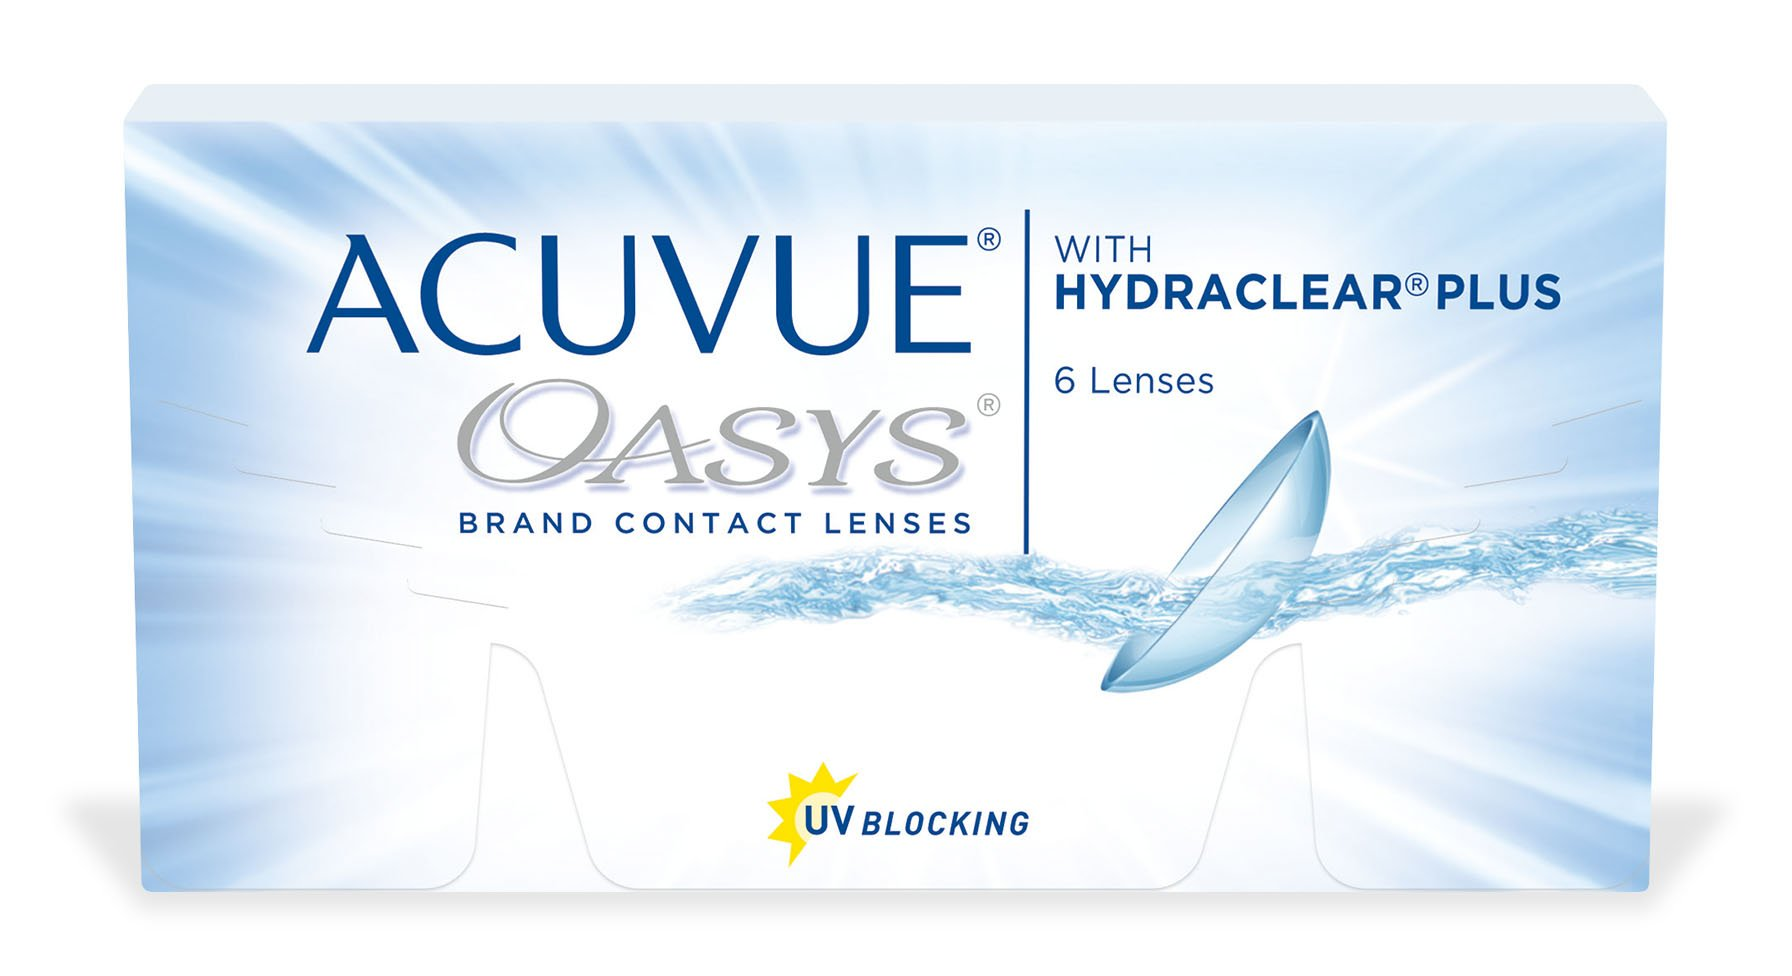 ACUVUE OASYS® con HYDRACLEAR Plus®